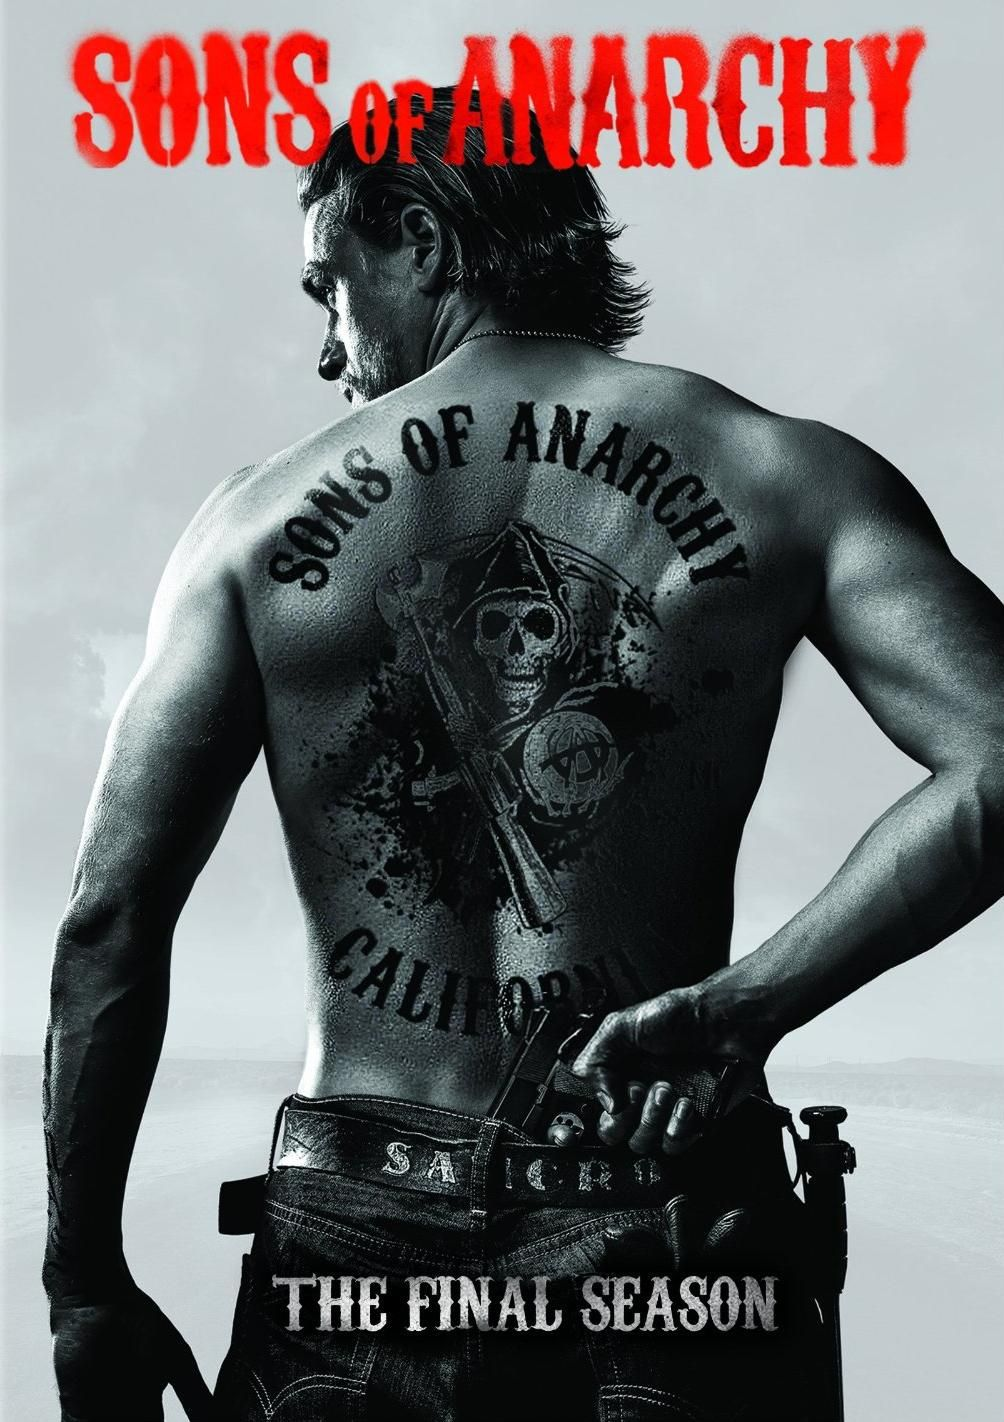 Final Ride BluRay/DVD cover art: | Sons of anarchy ...